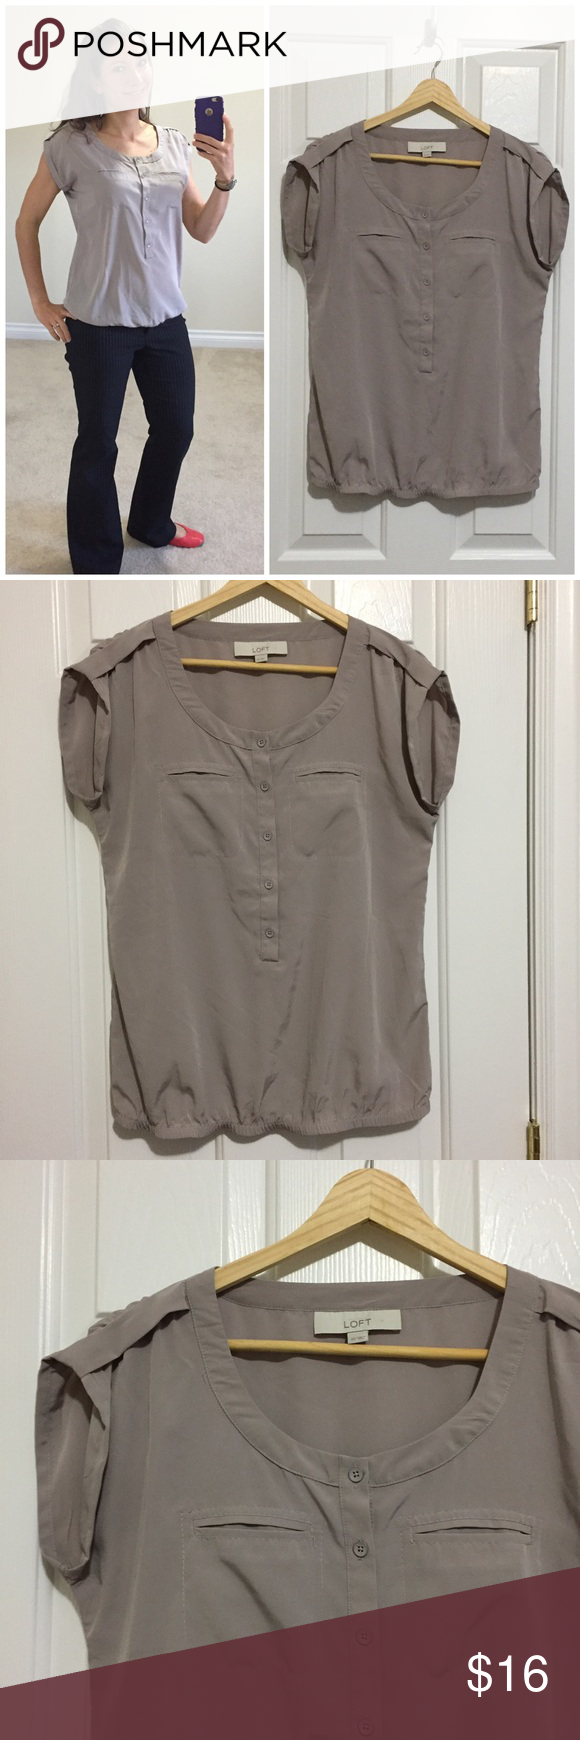 """LOFT taupe blouse LOFT classy work top in a neutral taupe color. Pairs great with pinstripes! Two front breast pockets, buttons halfway down, lightly elasticized waistband so that top falls straight. This was a beautiful flattering top that helped hide the beginning of my pregnancy. Size tag says XS but I think it fits like a small. Bust measures 18"""" across, length is 24"""" shoulder to hem. LOFT Tops Blouses"""